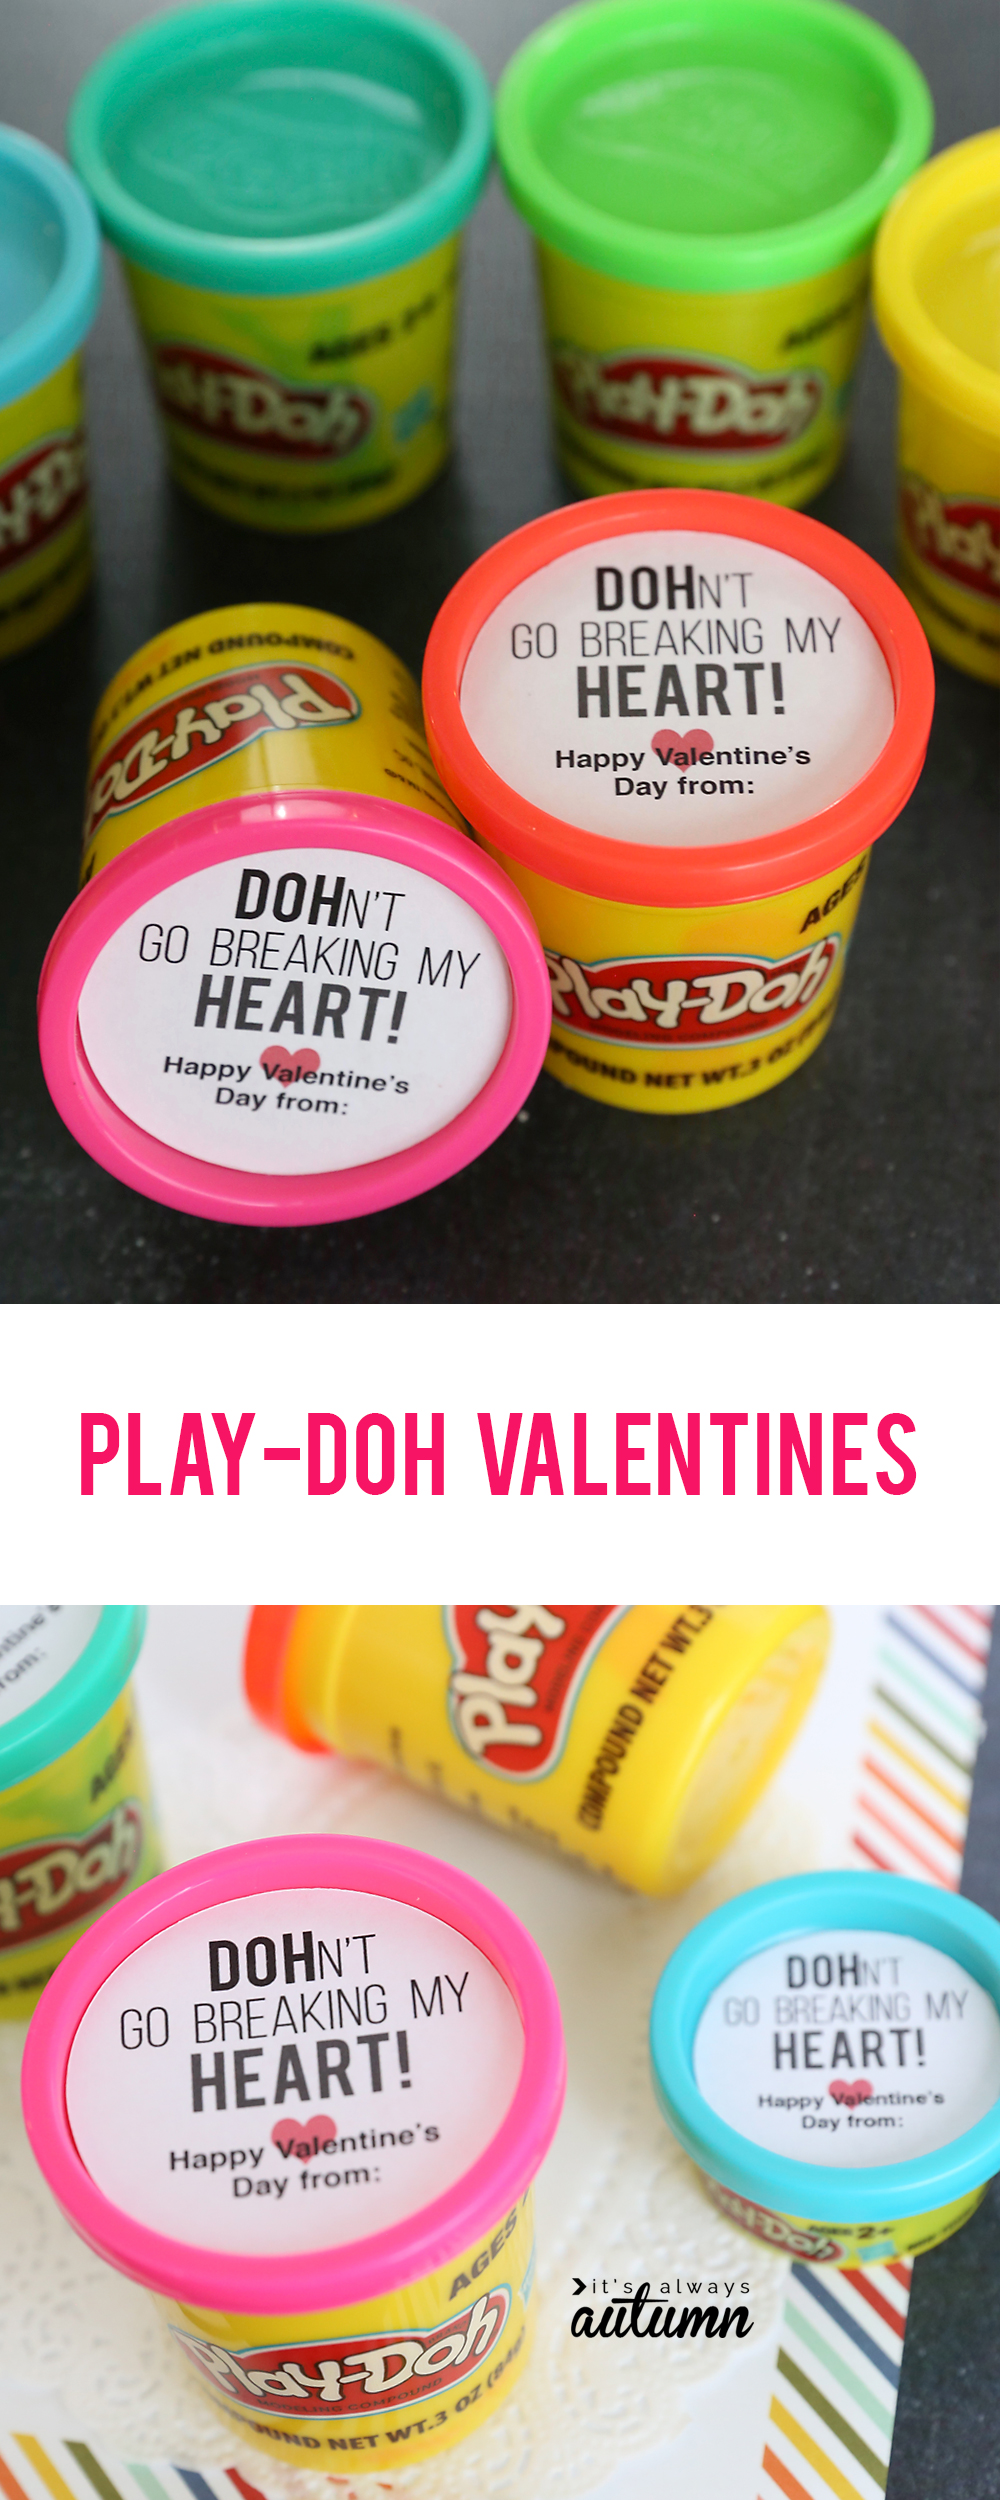 Cute Play-DOH Valentines! Easy printable Valentine's Day cards.